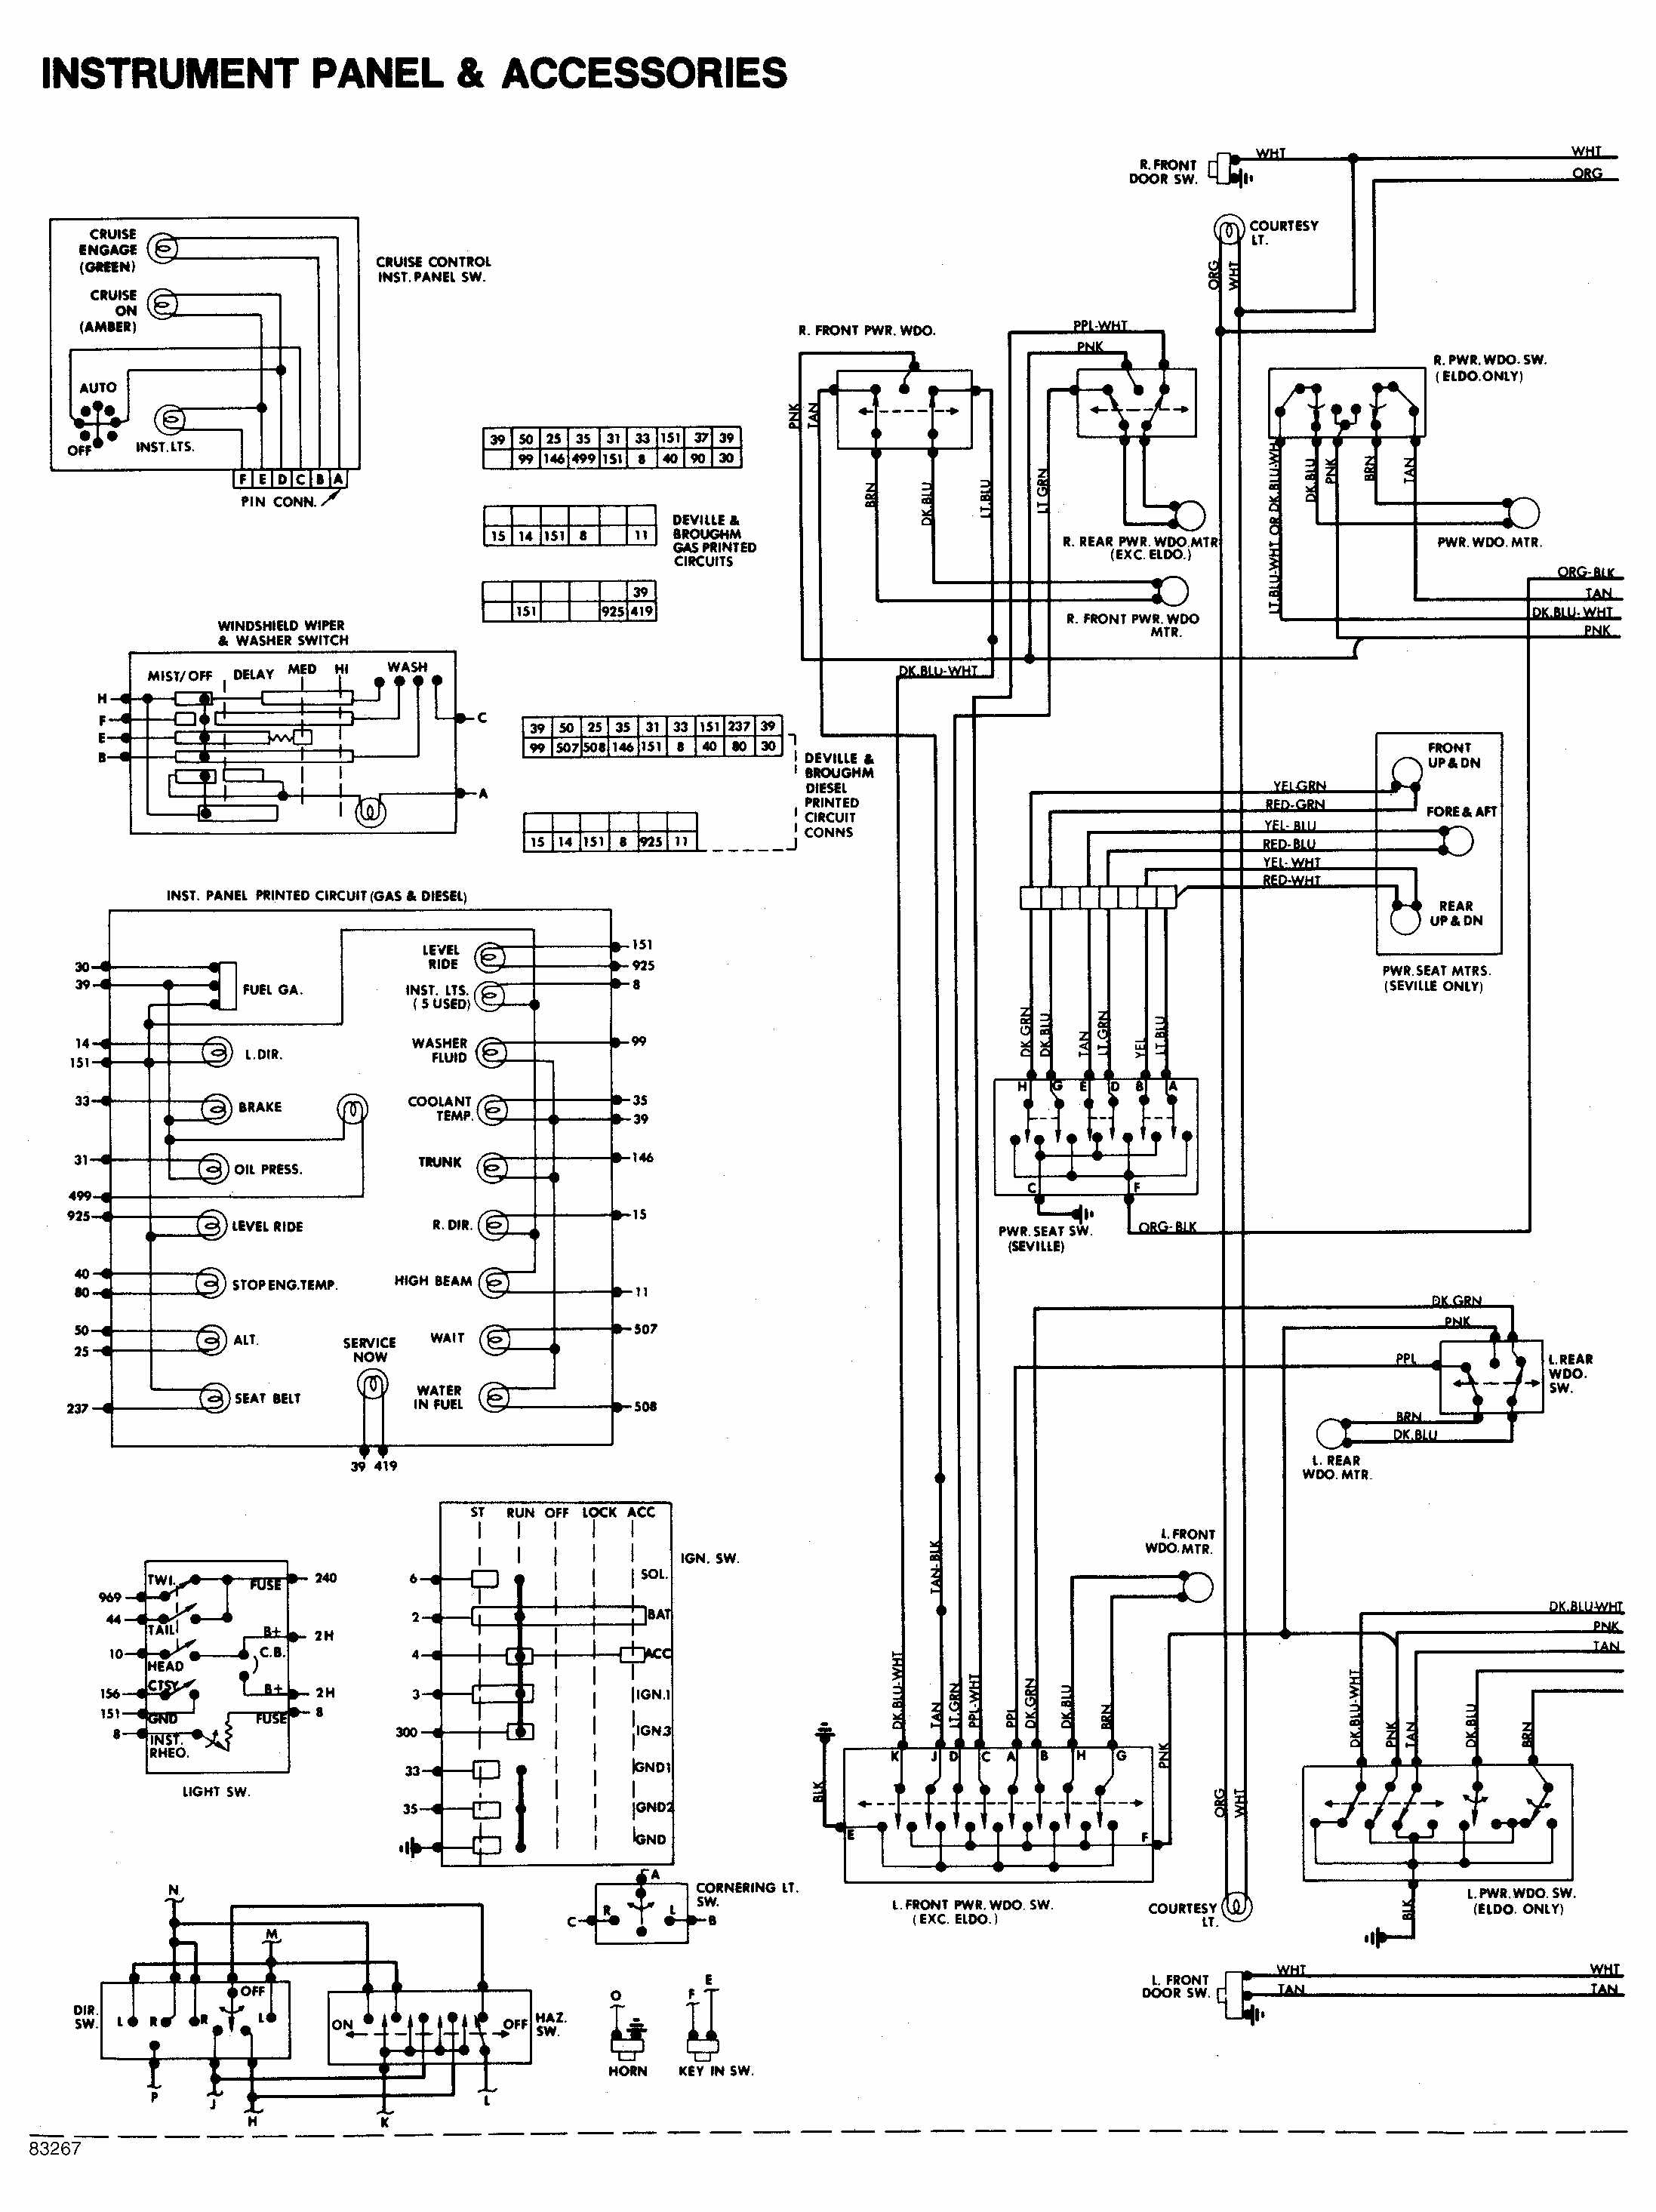 1971 Buick Skylark Wiring Diagram Starting Know About Circuit Board G01 28667 Chevy Diagrams Rh Wizard Com